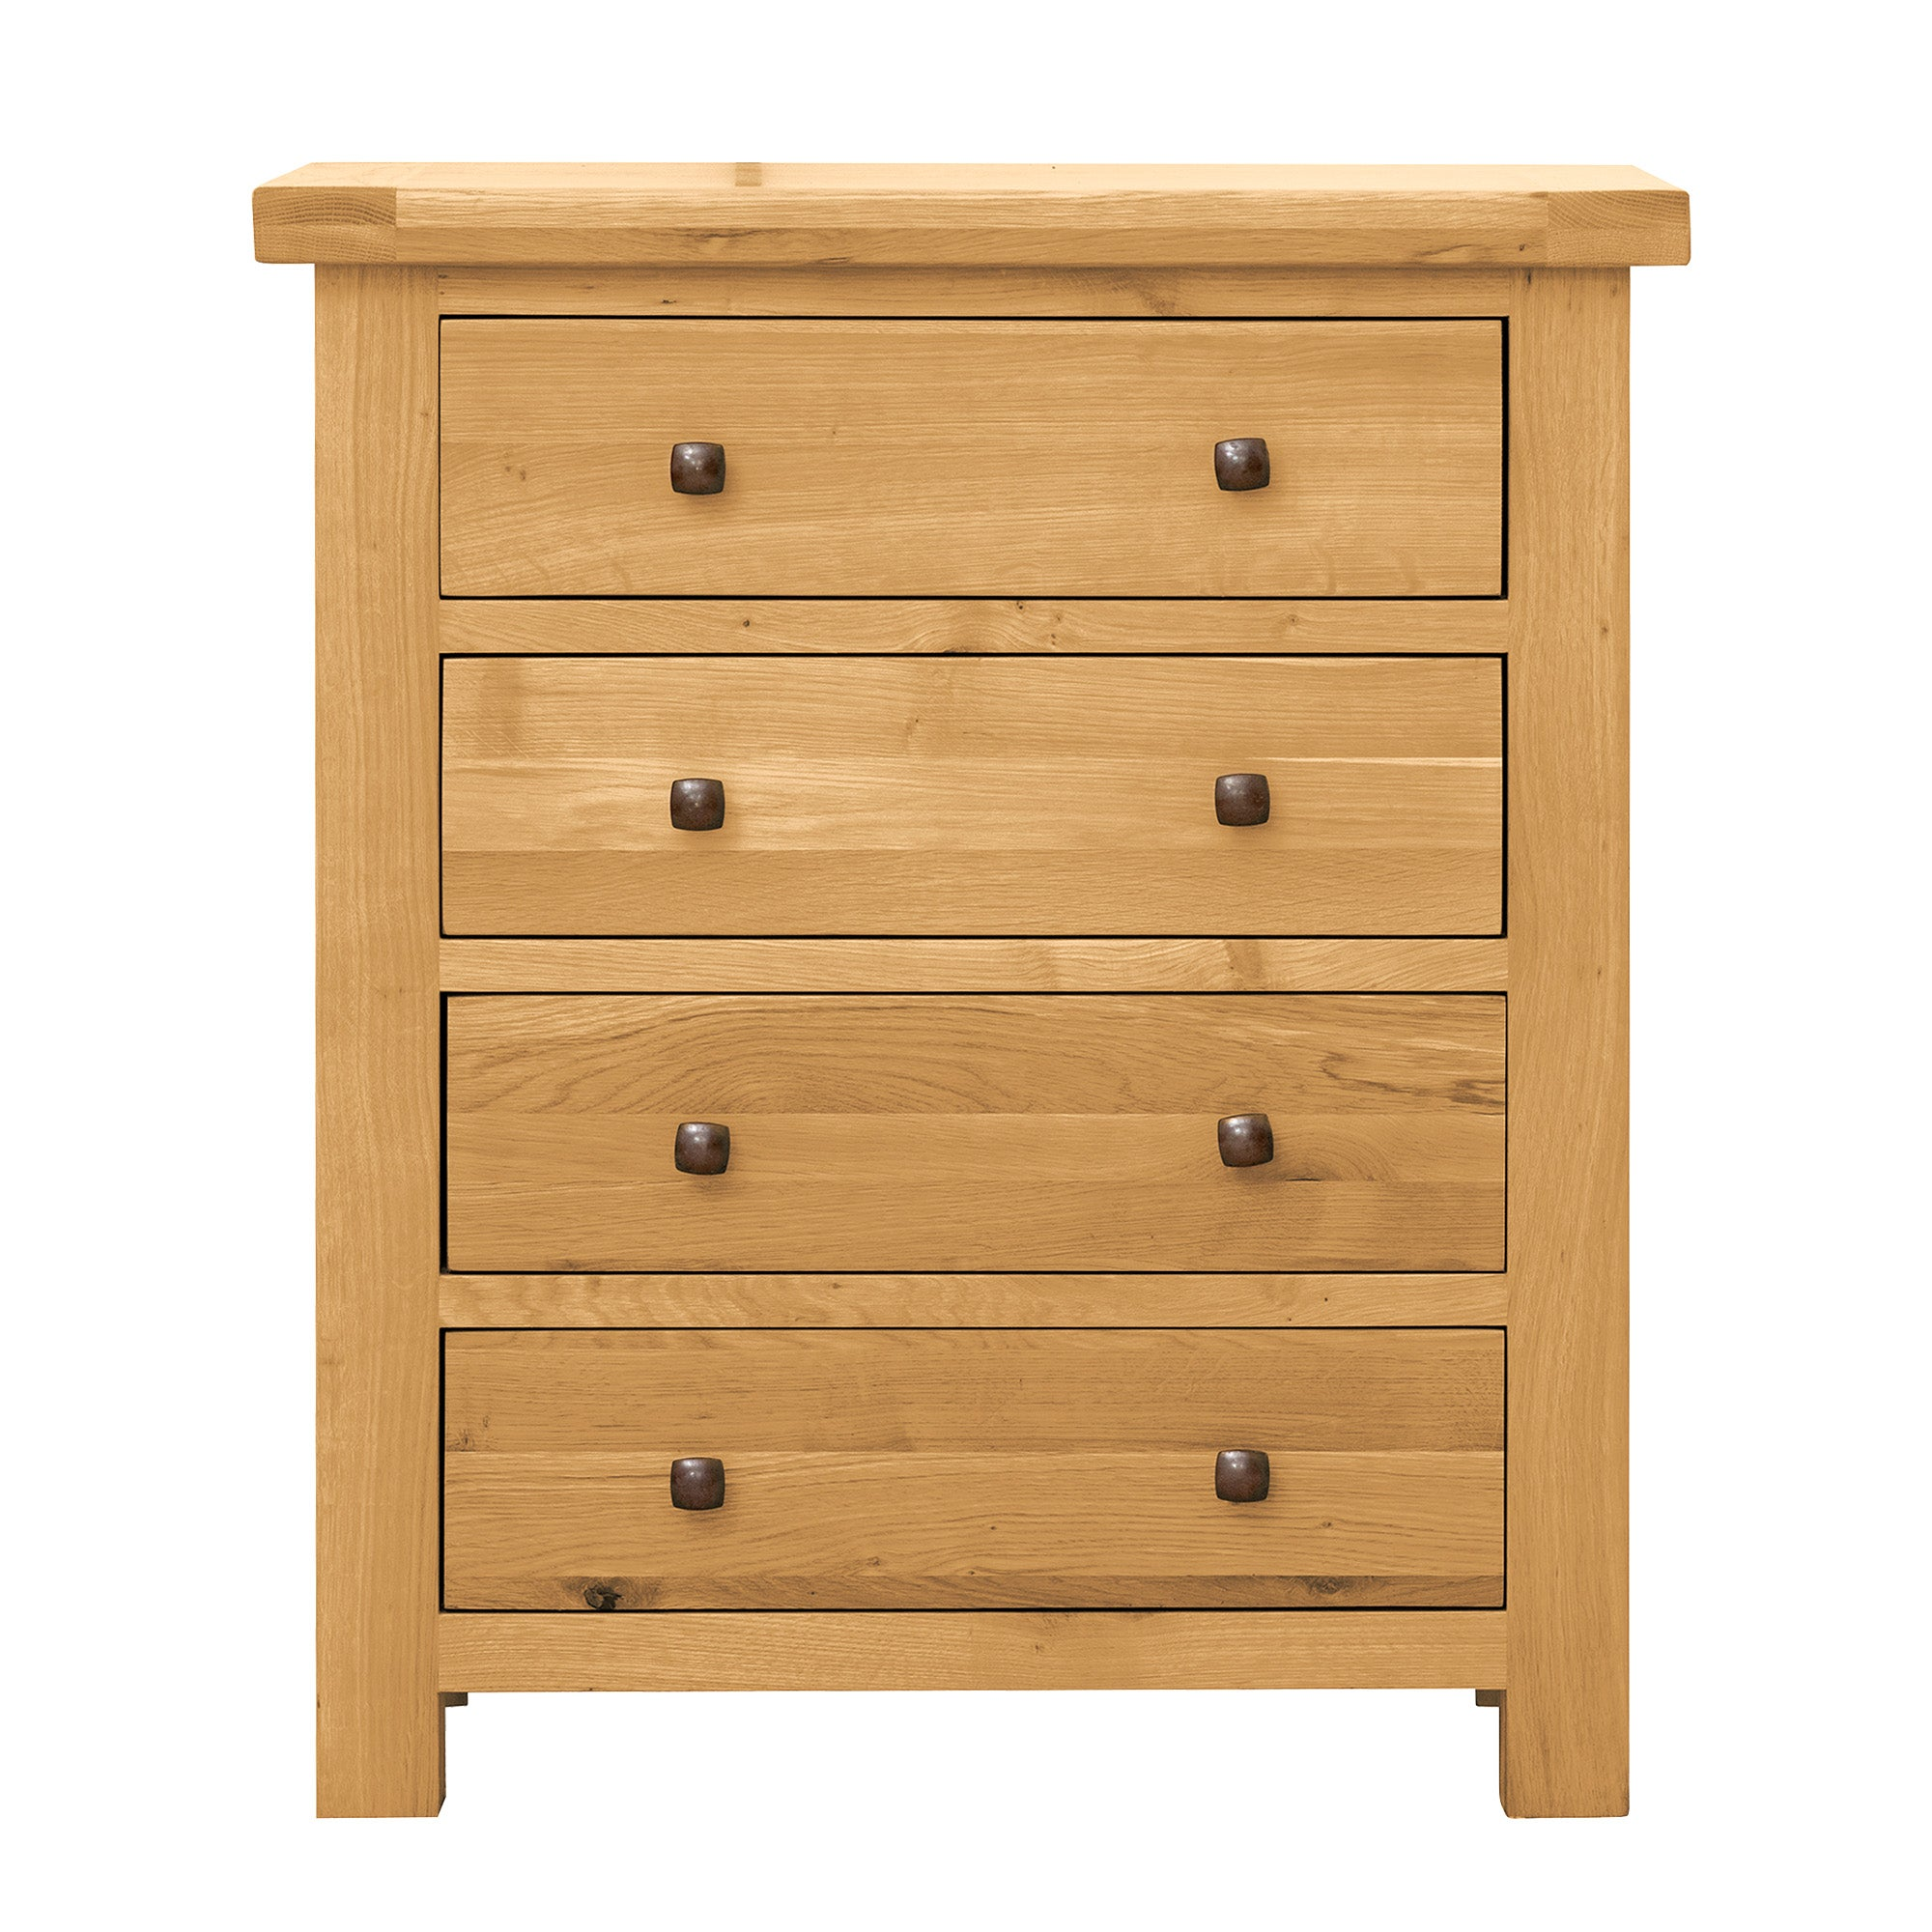 Harrogate Oak 4 Drawer Chest